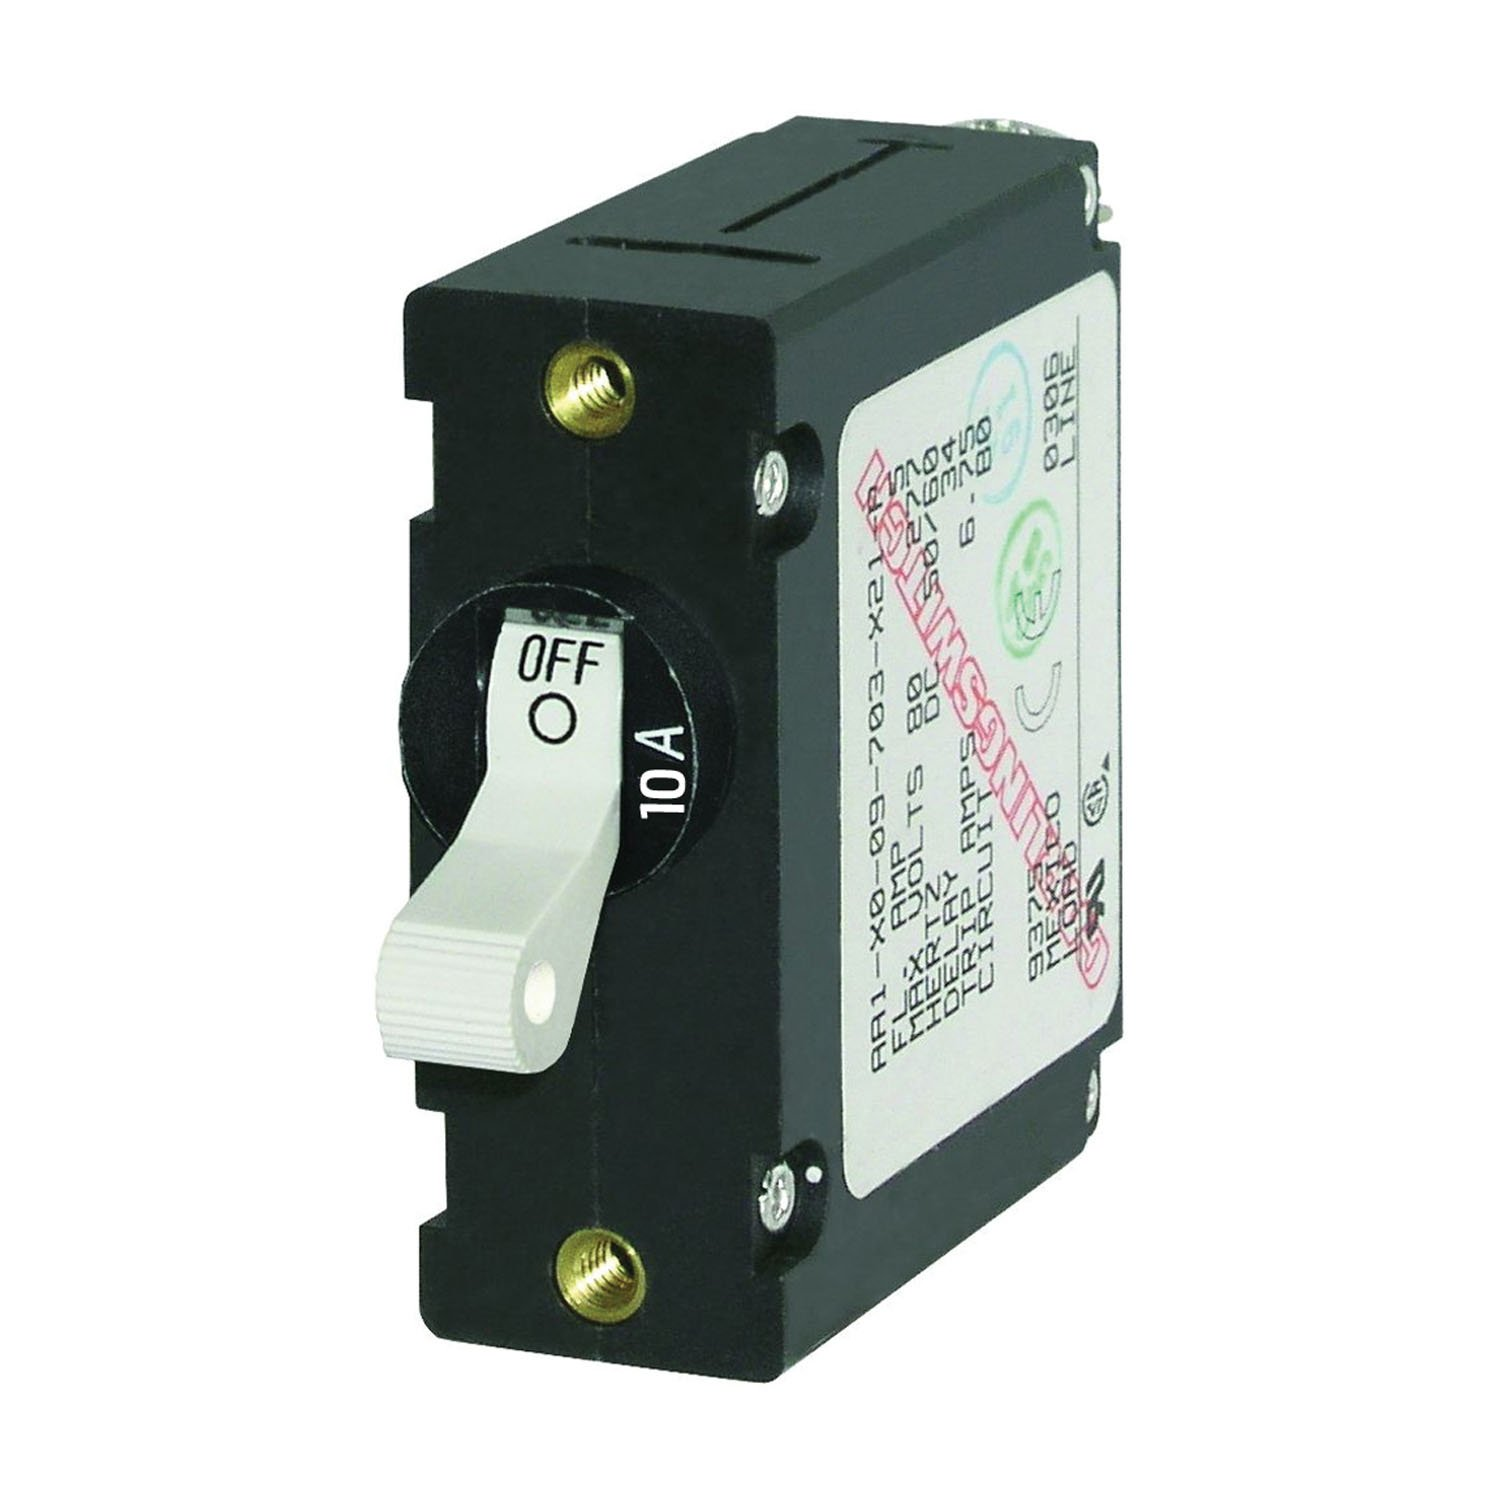 Blue Sea 7206 AC DC Single Breaker Circuit - Pole safety Magnetic Max 72% OFF World